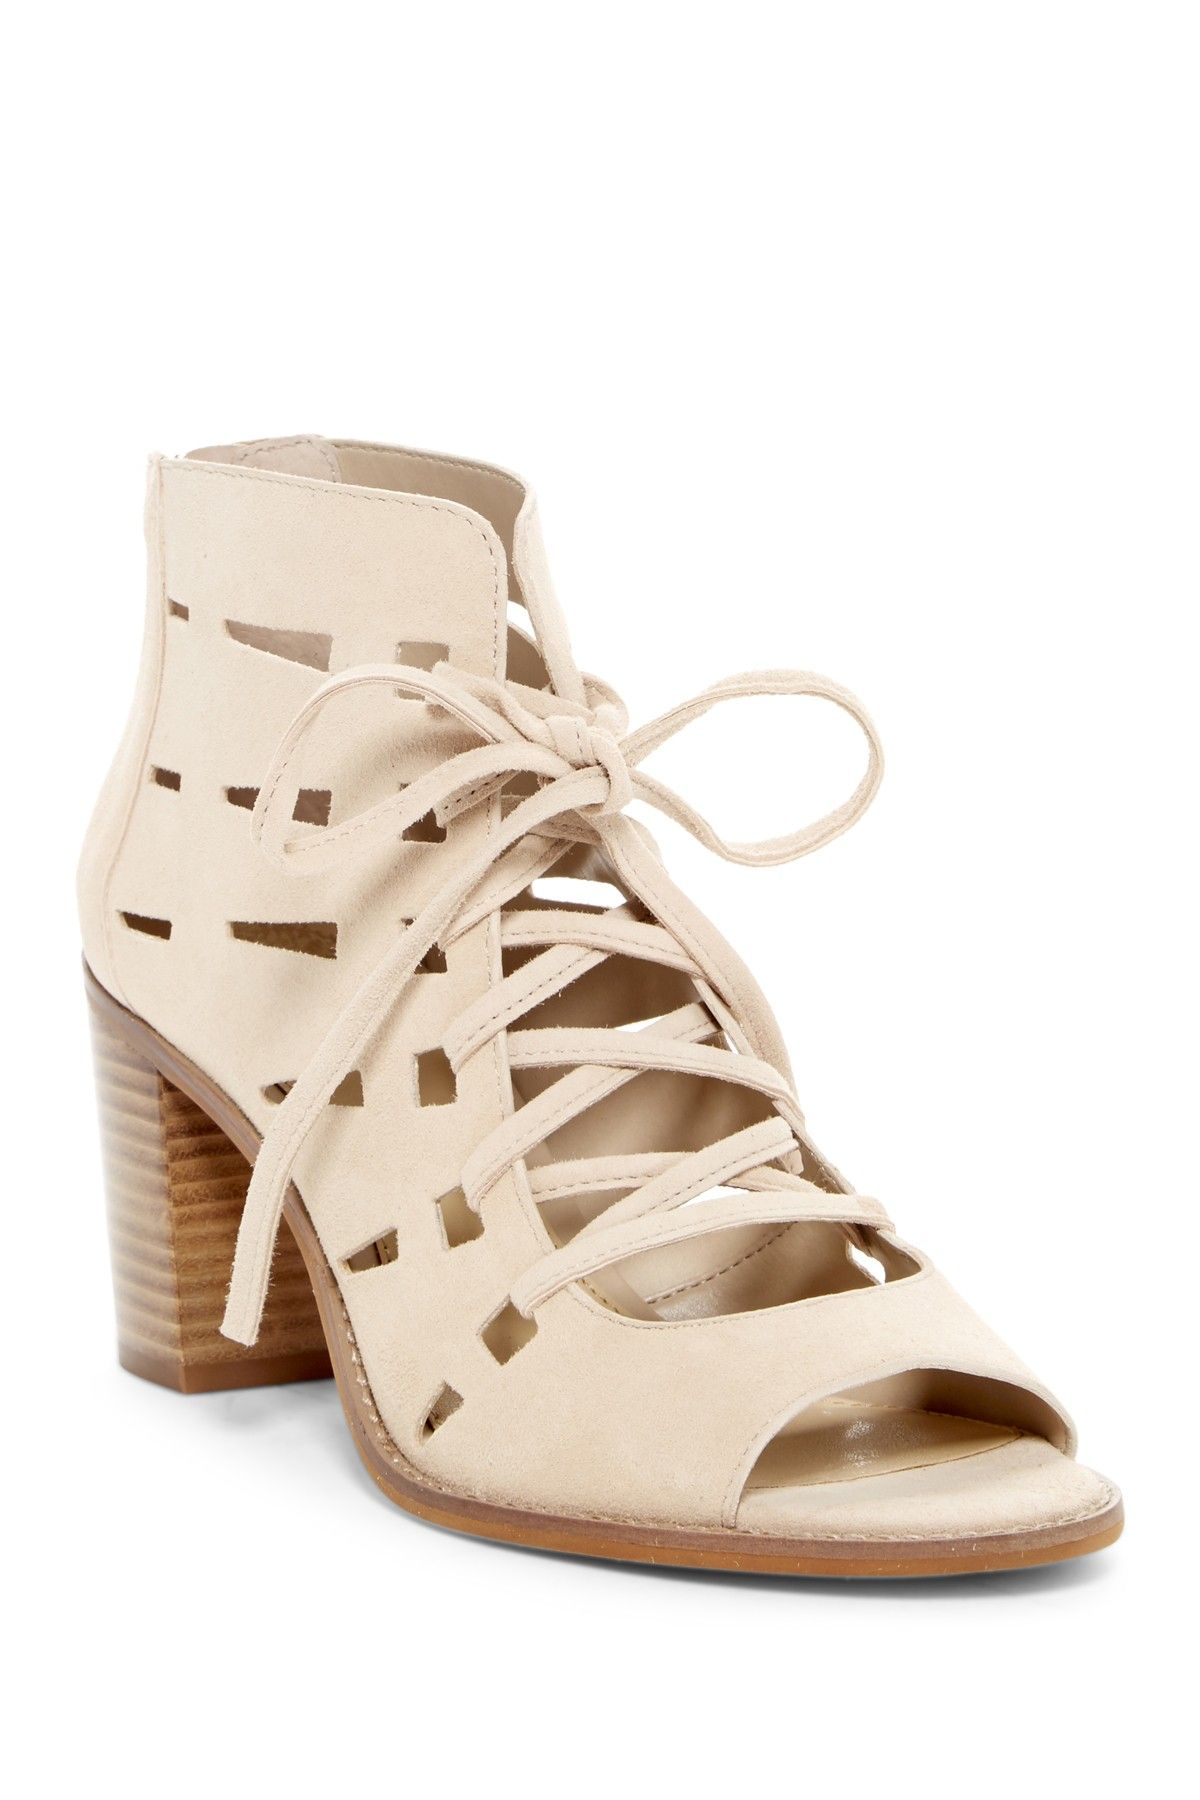 c1f1d93a4ac Vince Camuto Tressa Perforated Leather Block Heel Sandal